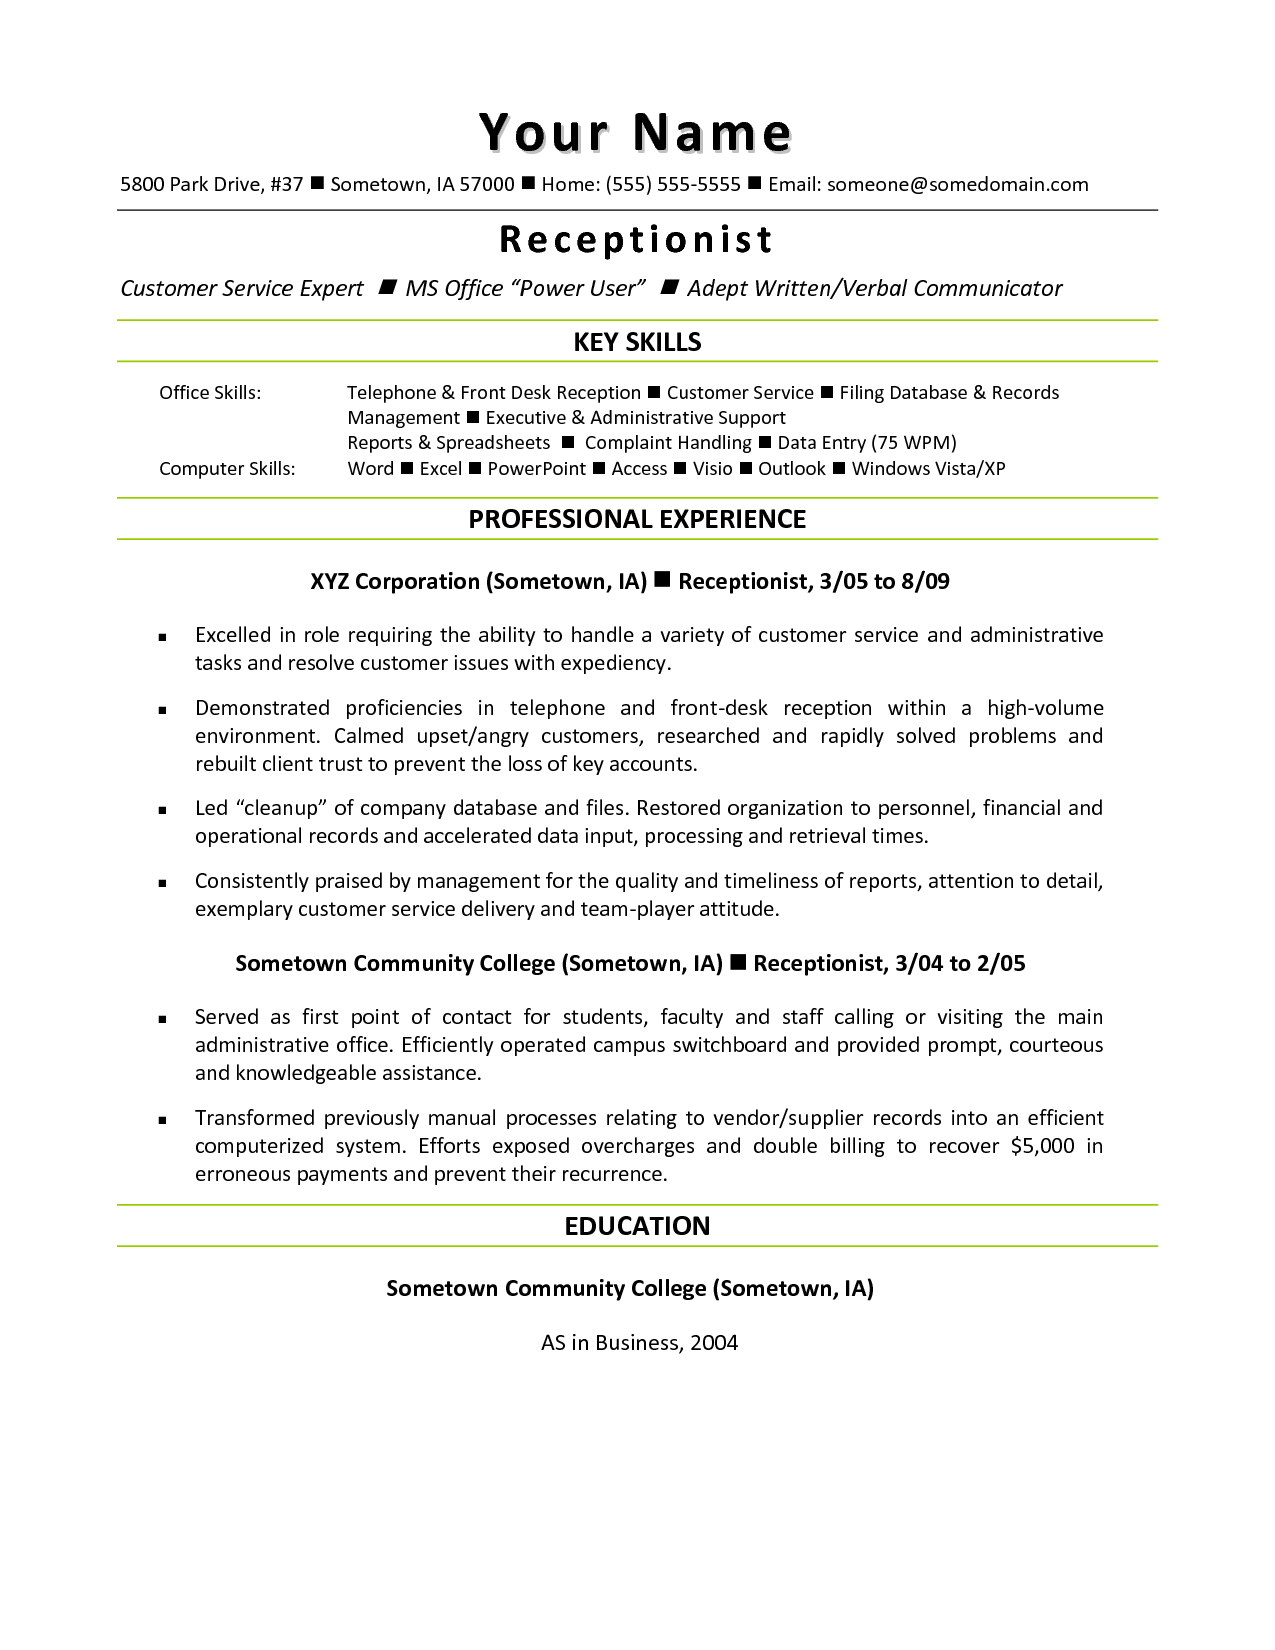 law front office receptionist resume key skills and professional experience law firm resume - Receptionist Resumes Samples